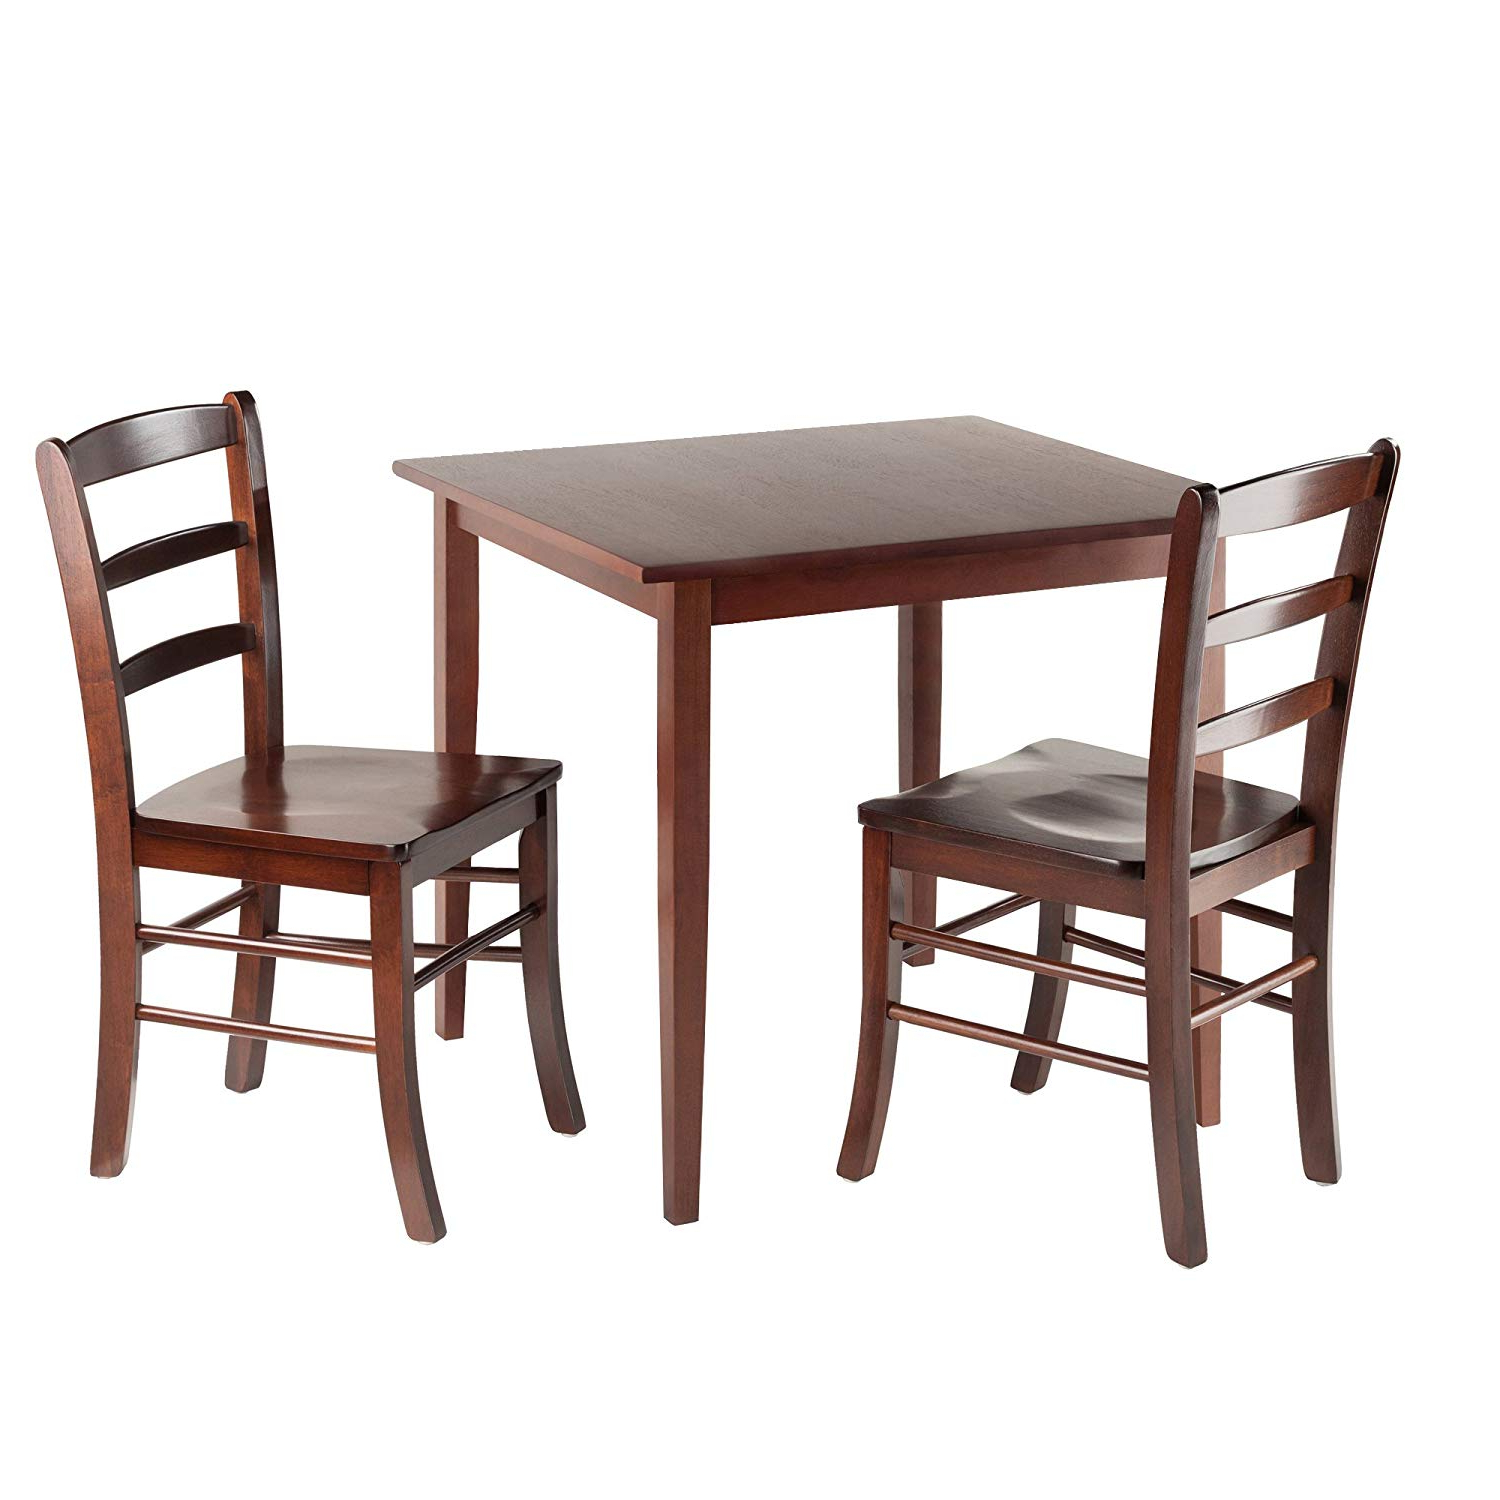 Winsome 3 Piece Counter Height Dining Sets Within 2018 Winsome Groveland Square Dining Table With 2 Chairs, 3 Piece (View 13 of 20)